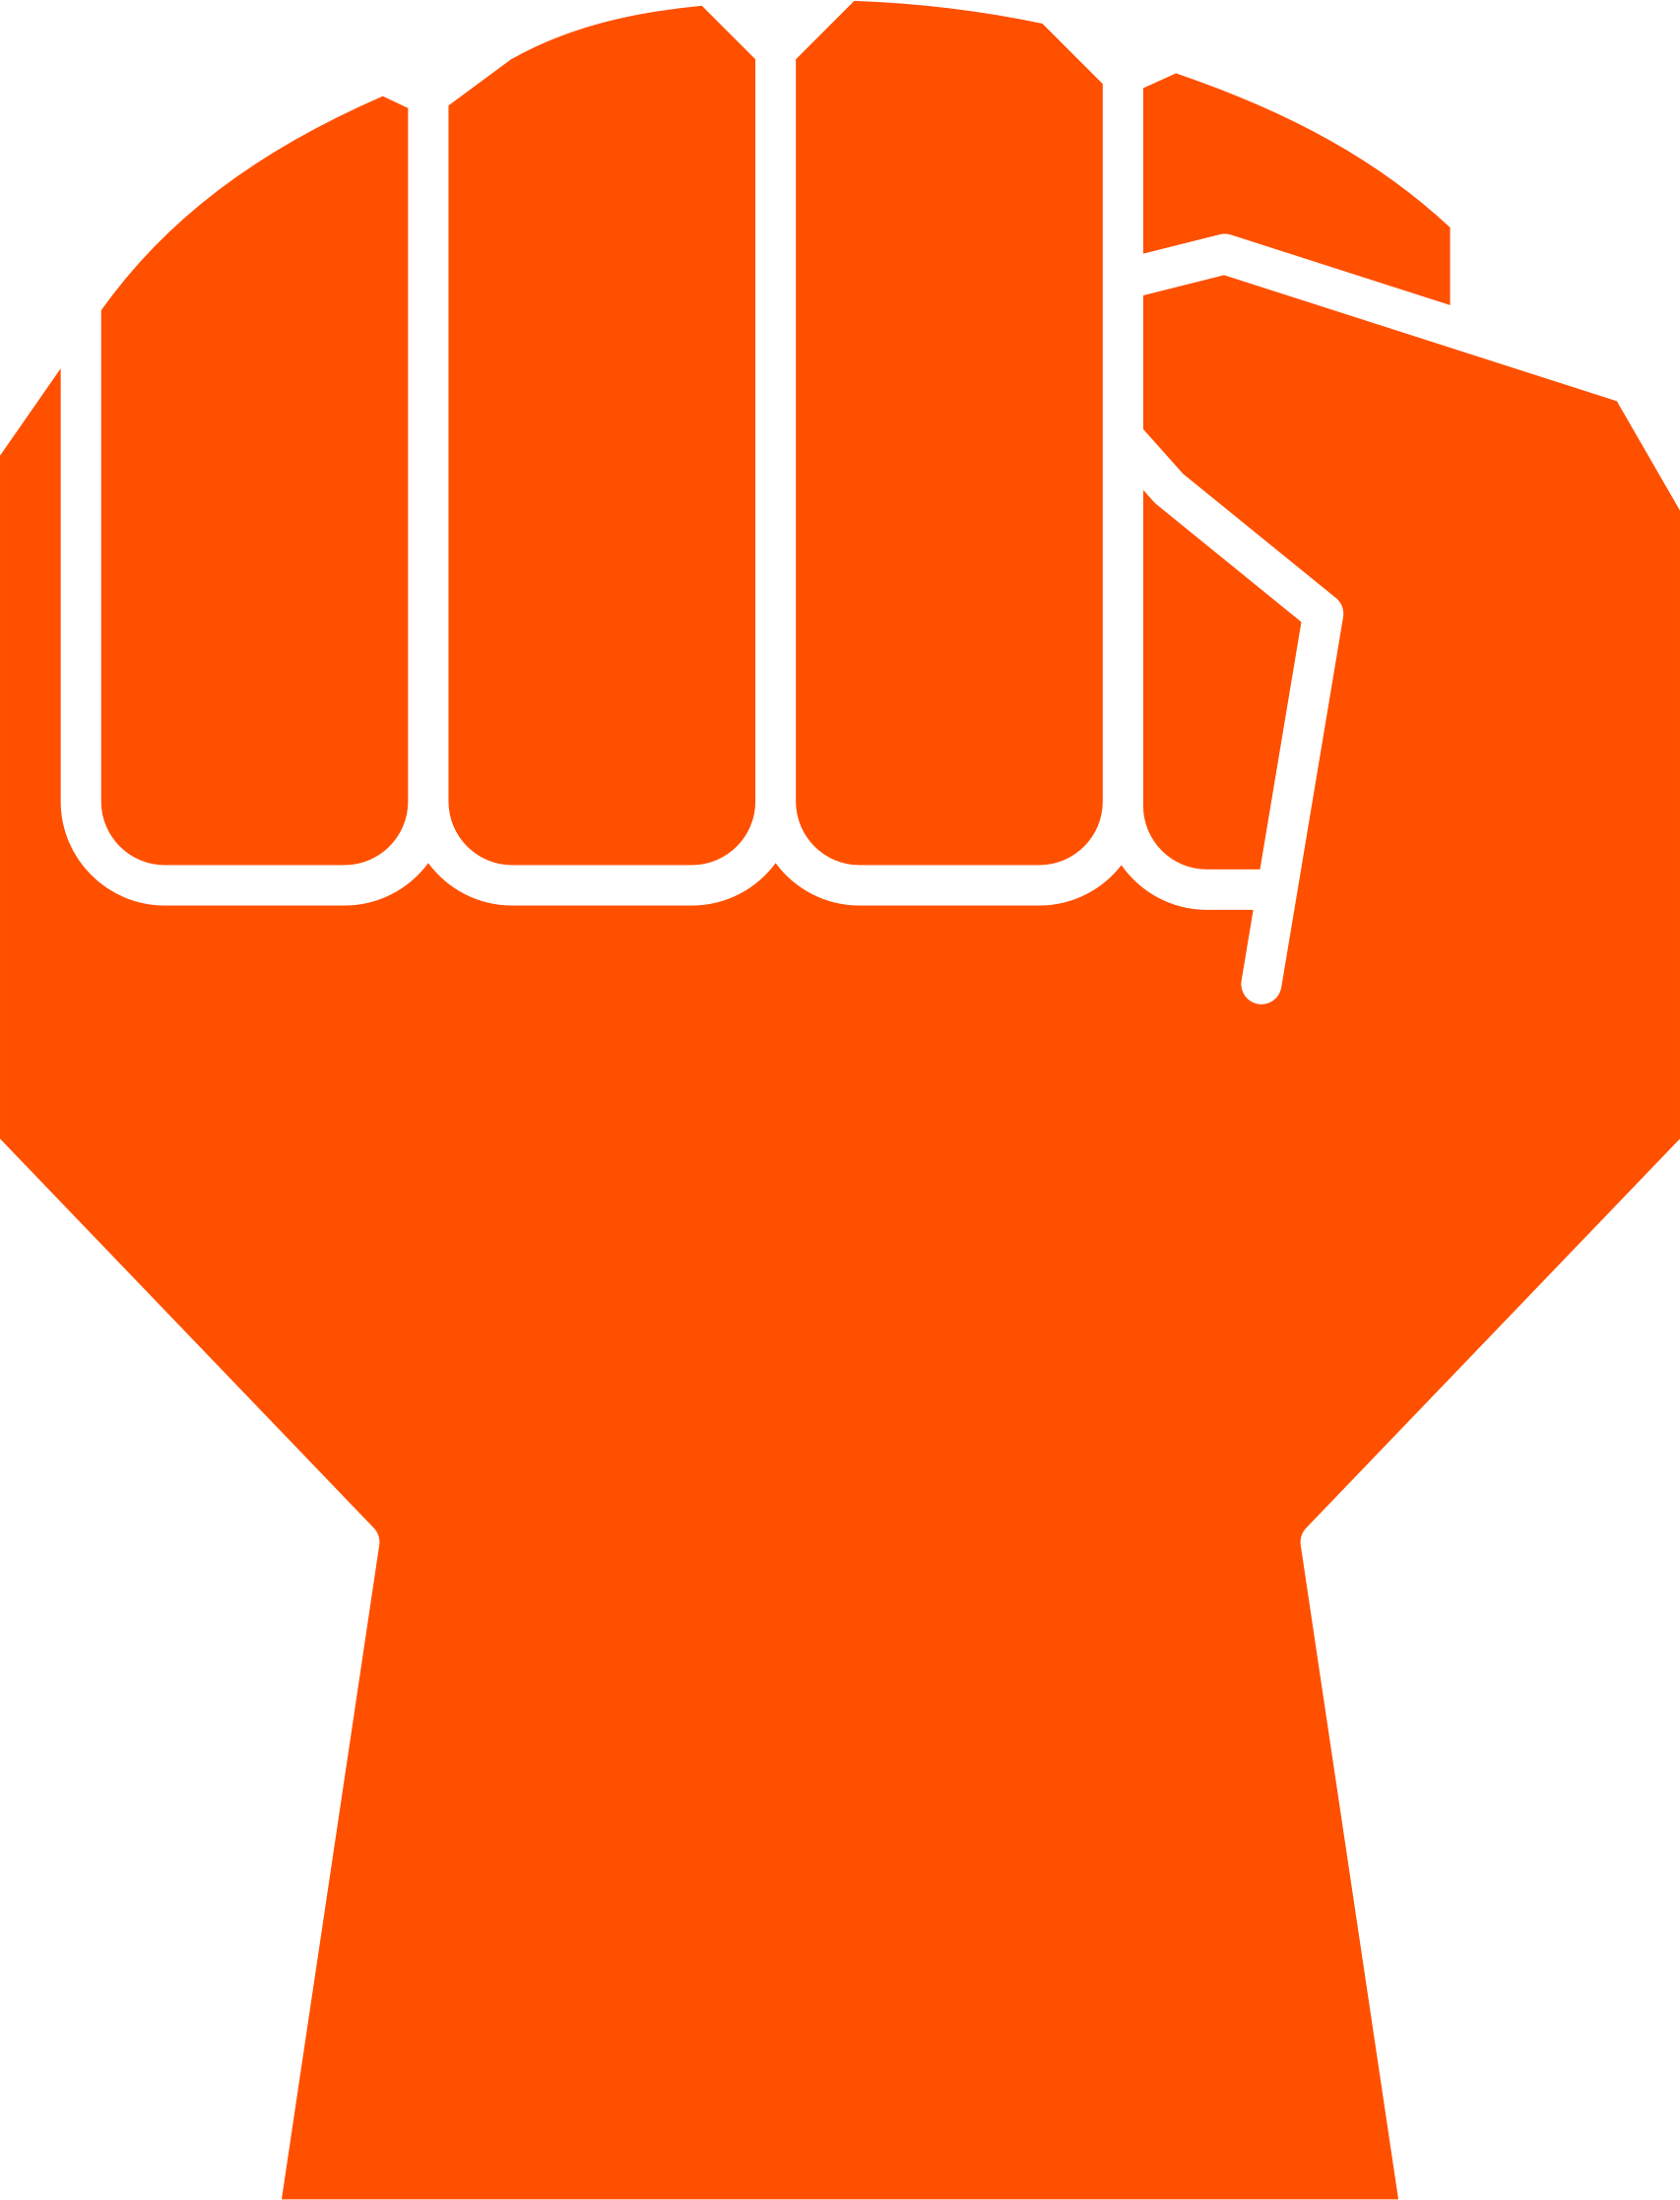 Croque drawing vector. Clipart clenched fist no